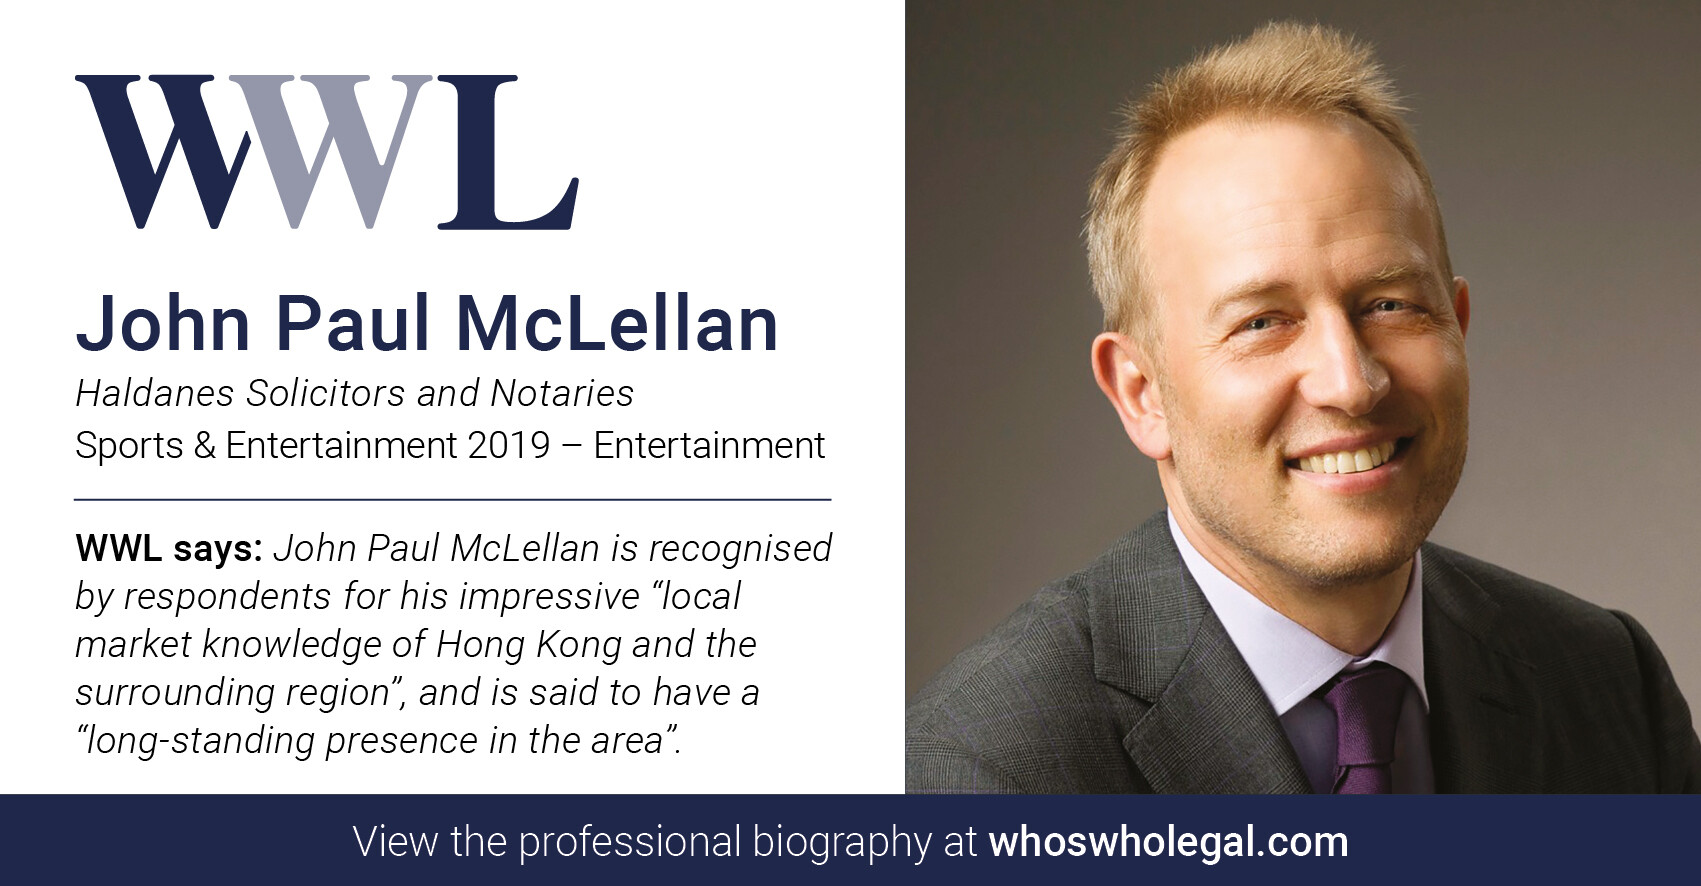 WWL John McLellan - Haldanes recognised in Who's Who Legal Sports & Entertainment 2019